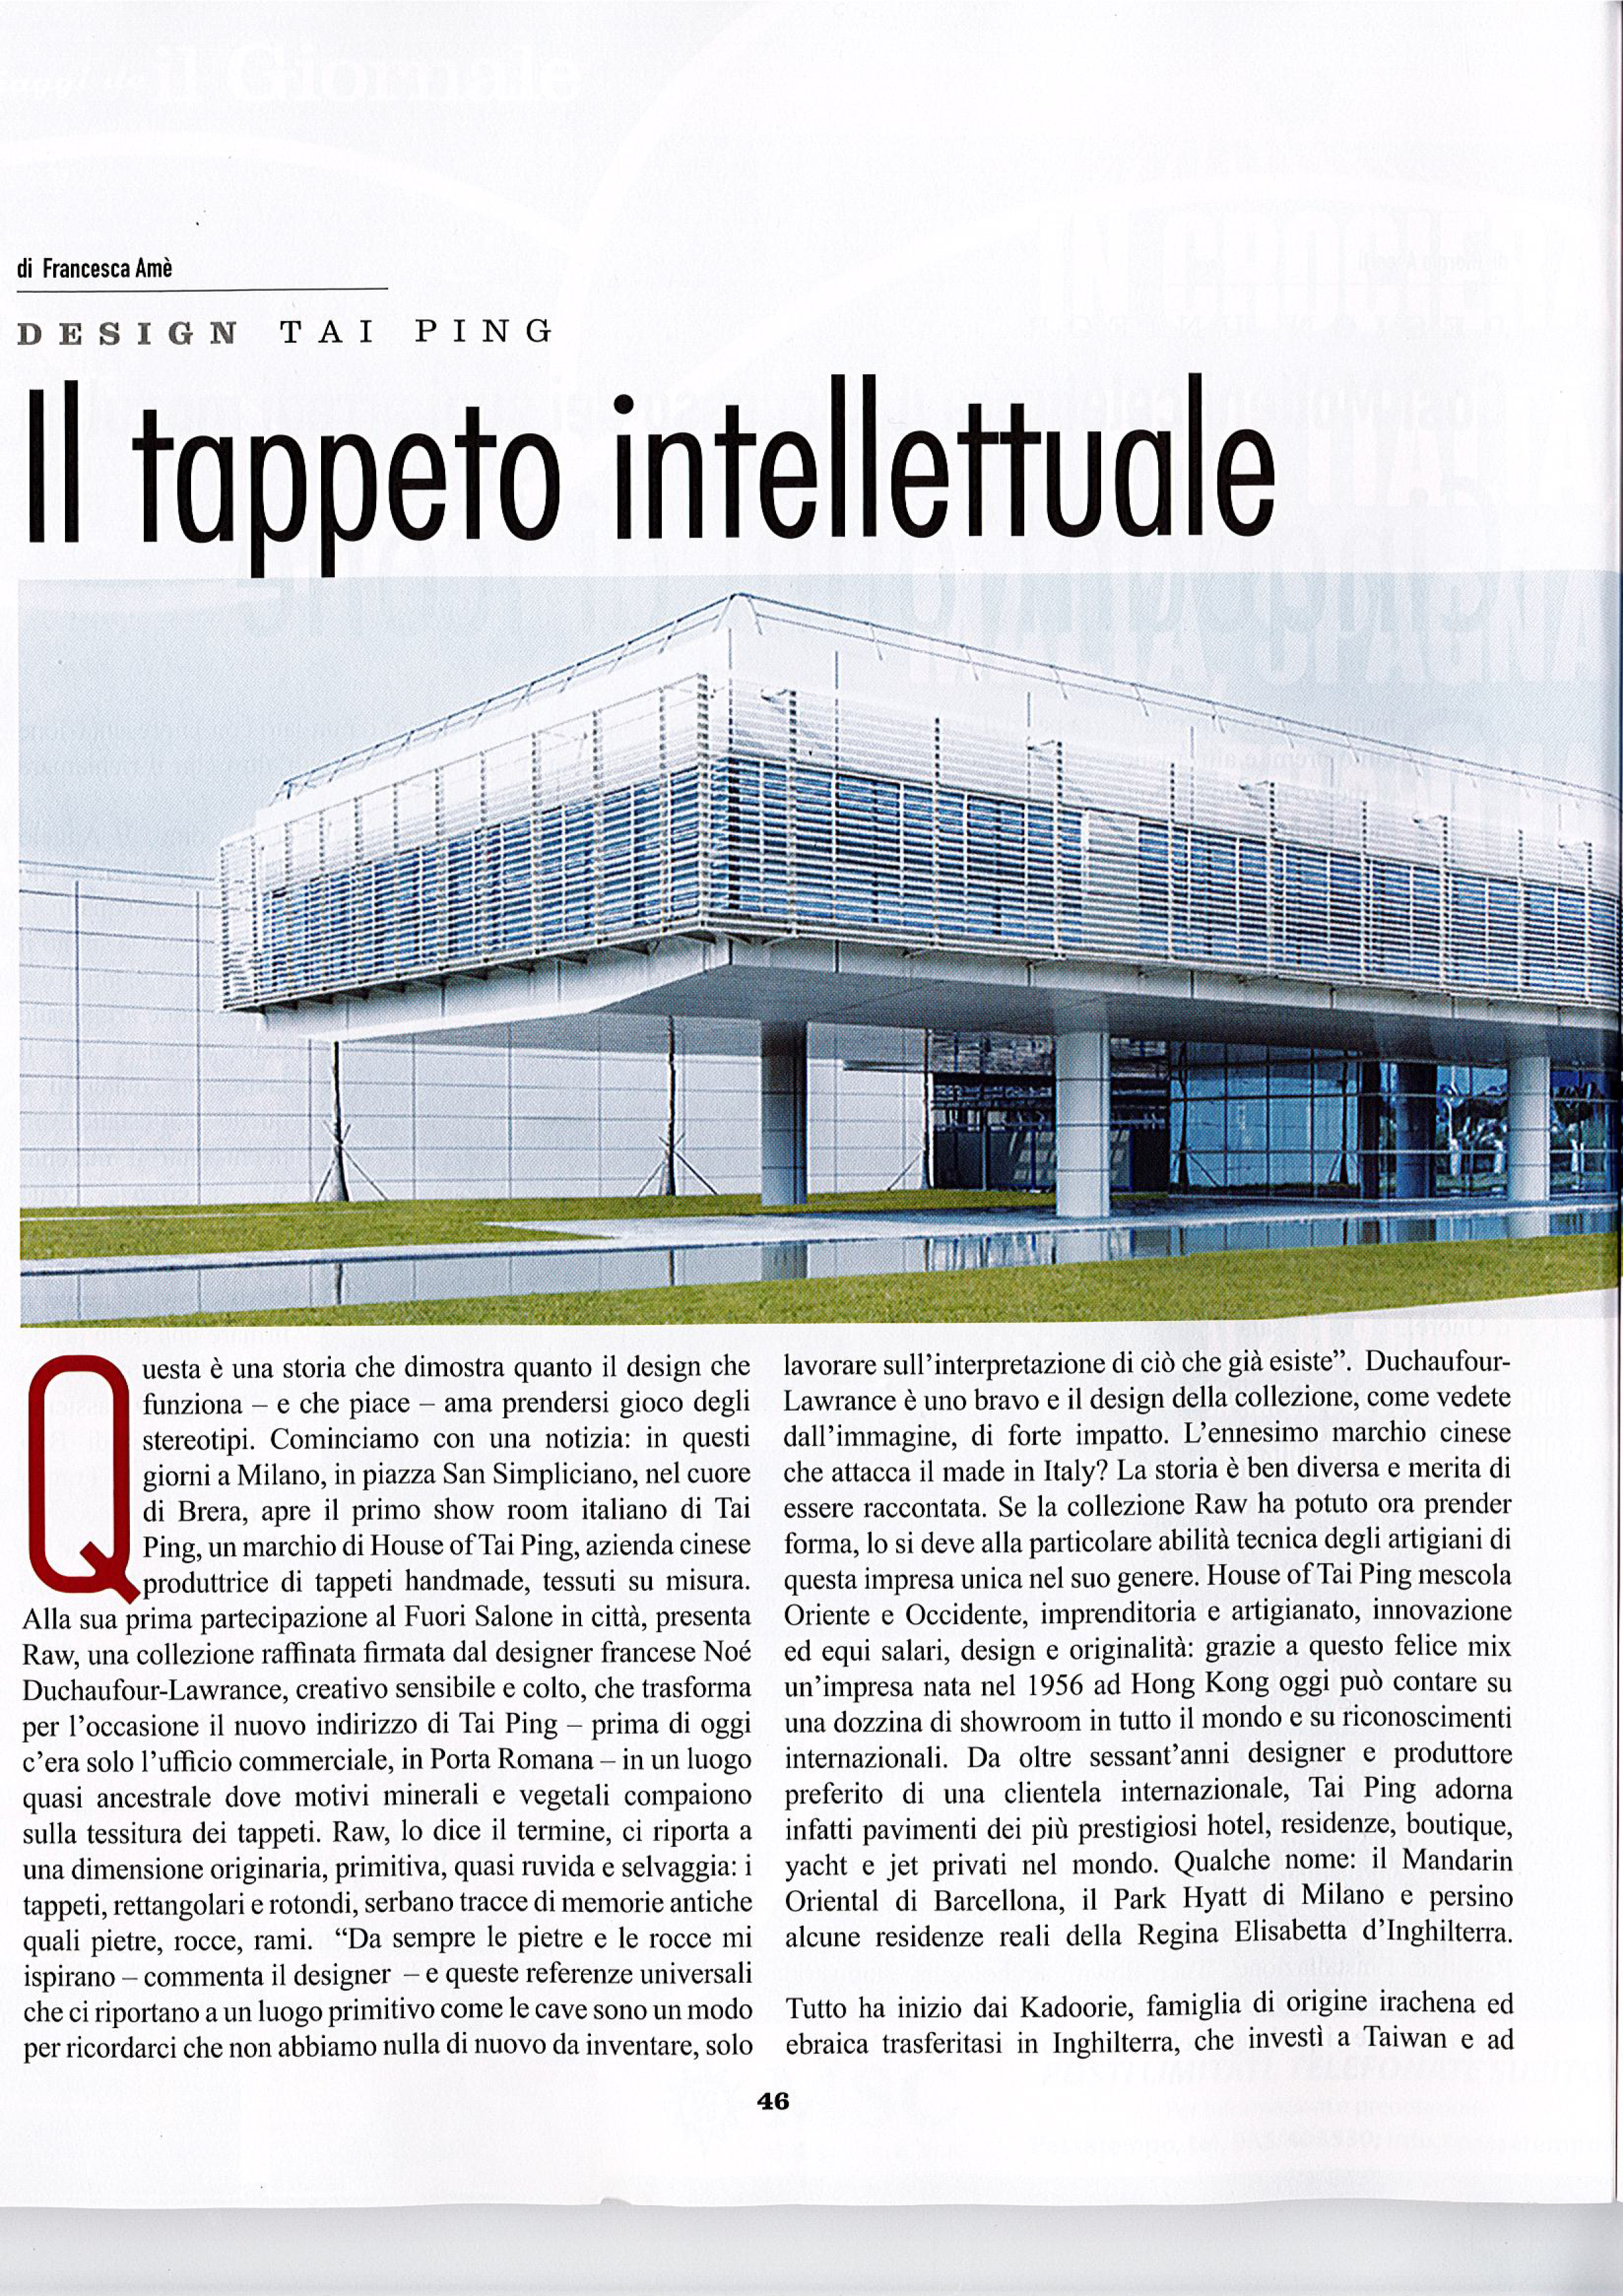 TP_Style -Il Giornale April 2019 pag 46.jpg